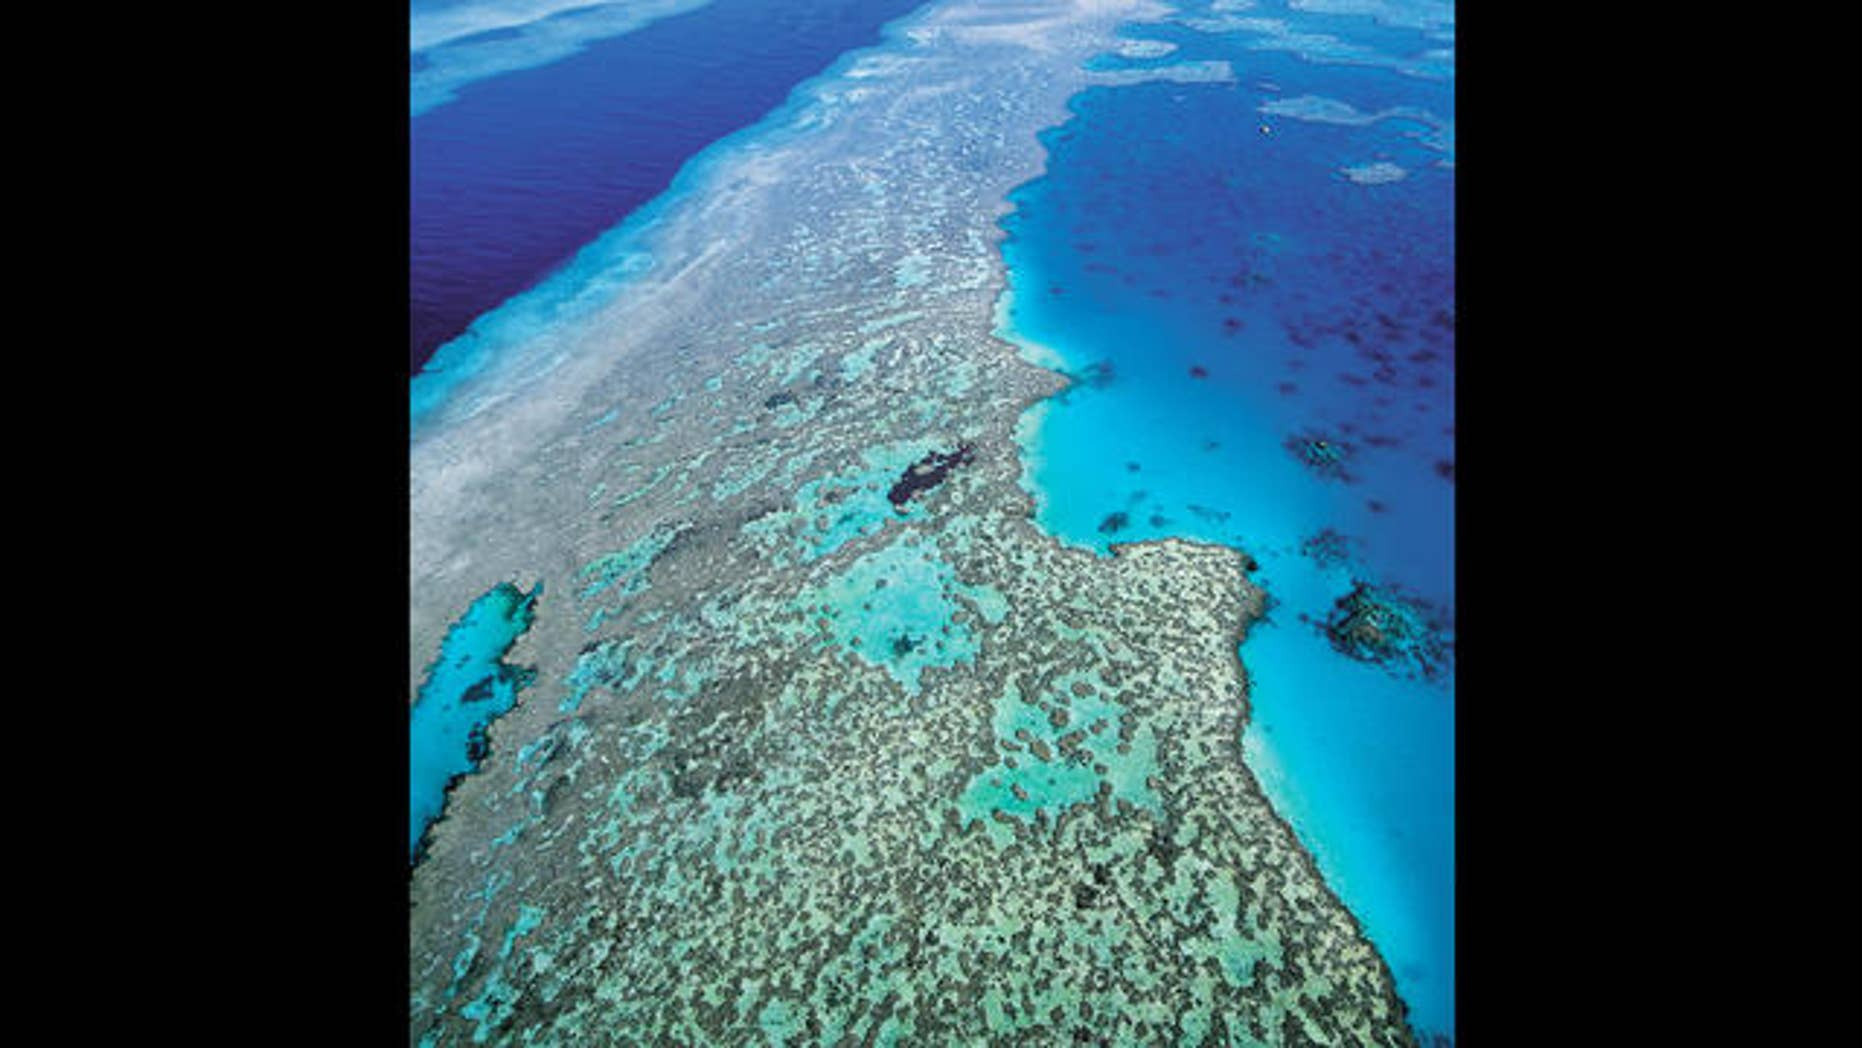 An aerial view of the Great Barrier Reef off Australia's Queensland state.